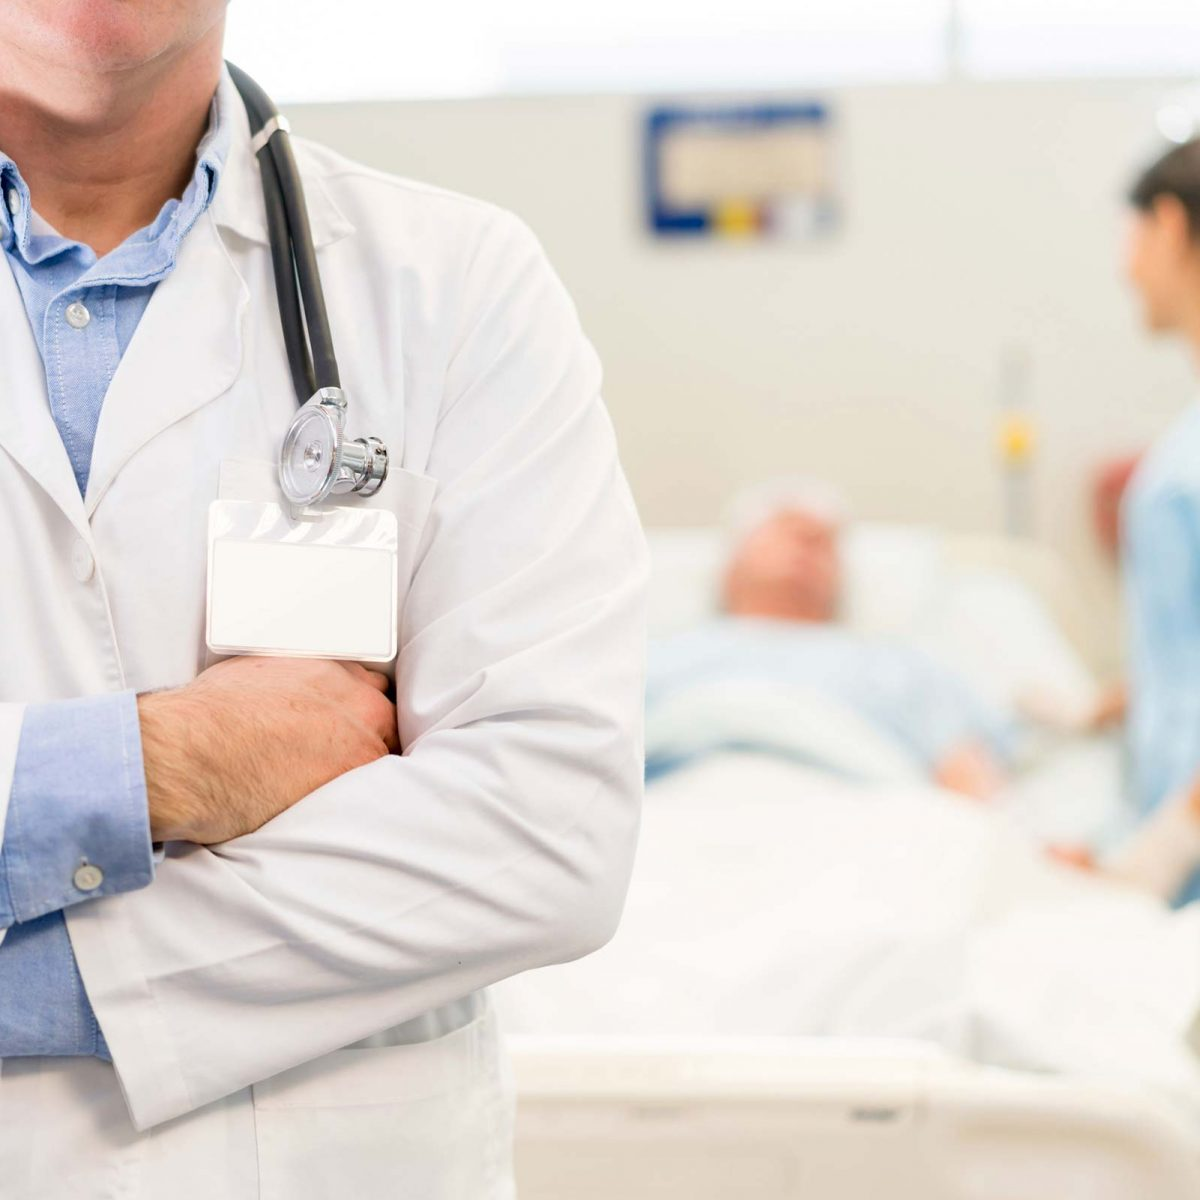 Secrets the Emergency Room Staff Won't Tell You | Reader's Digest